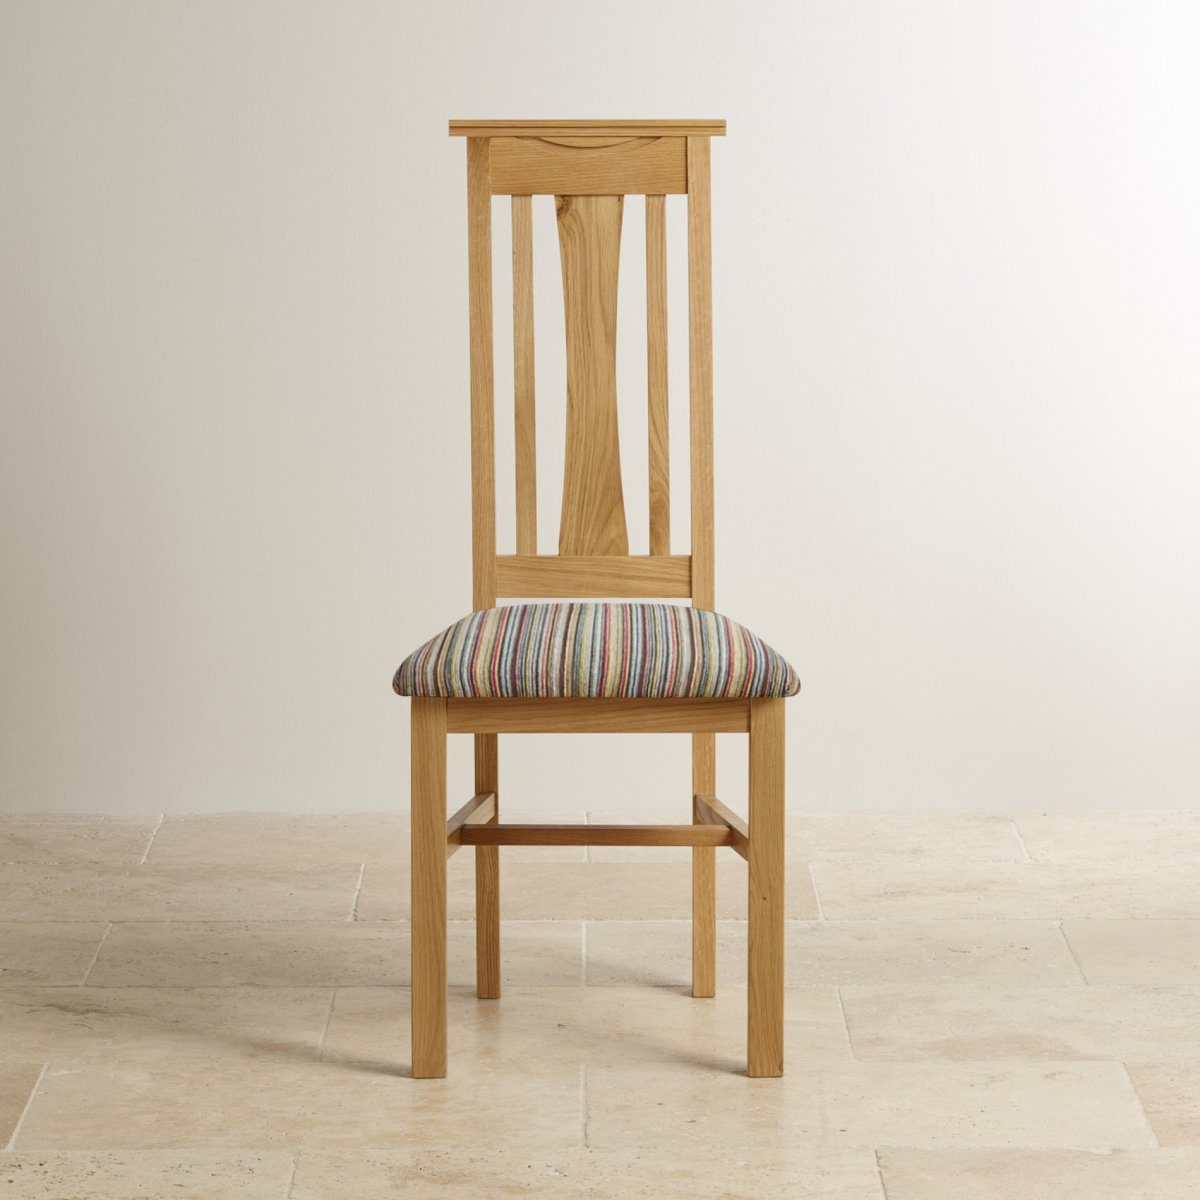 Striped Dining Room Chairs: Tokyo Dining Chair In Solidl Oak